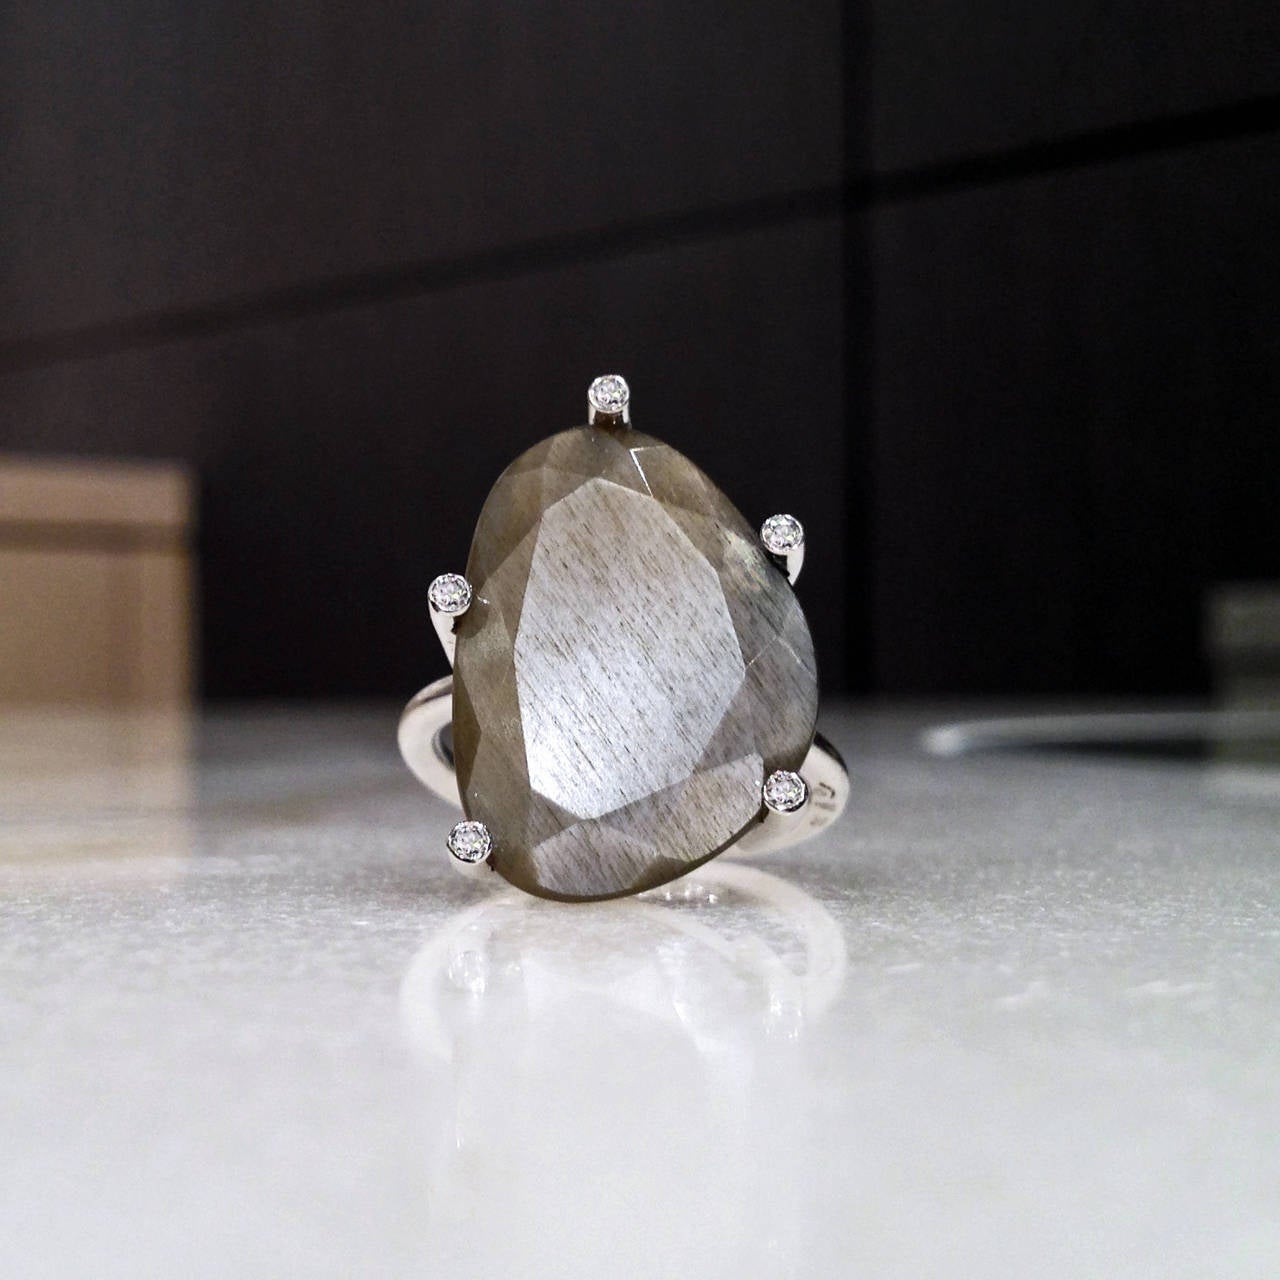 One-of-a-Kind Snowflake Ring handcrafted in 18k white gold showcasing a phenomenal 11.96 carat custom-cut-and-faceted gray moonstone, accented by 5 white, round brilliant-cut diamonds totaling 0.07 carats. Size 7.25 (Can be sized). 